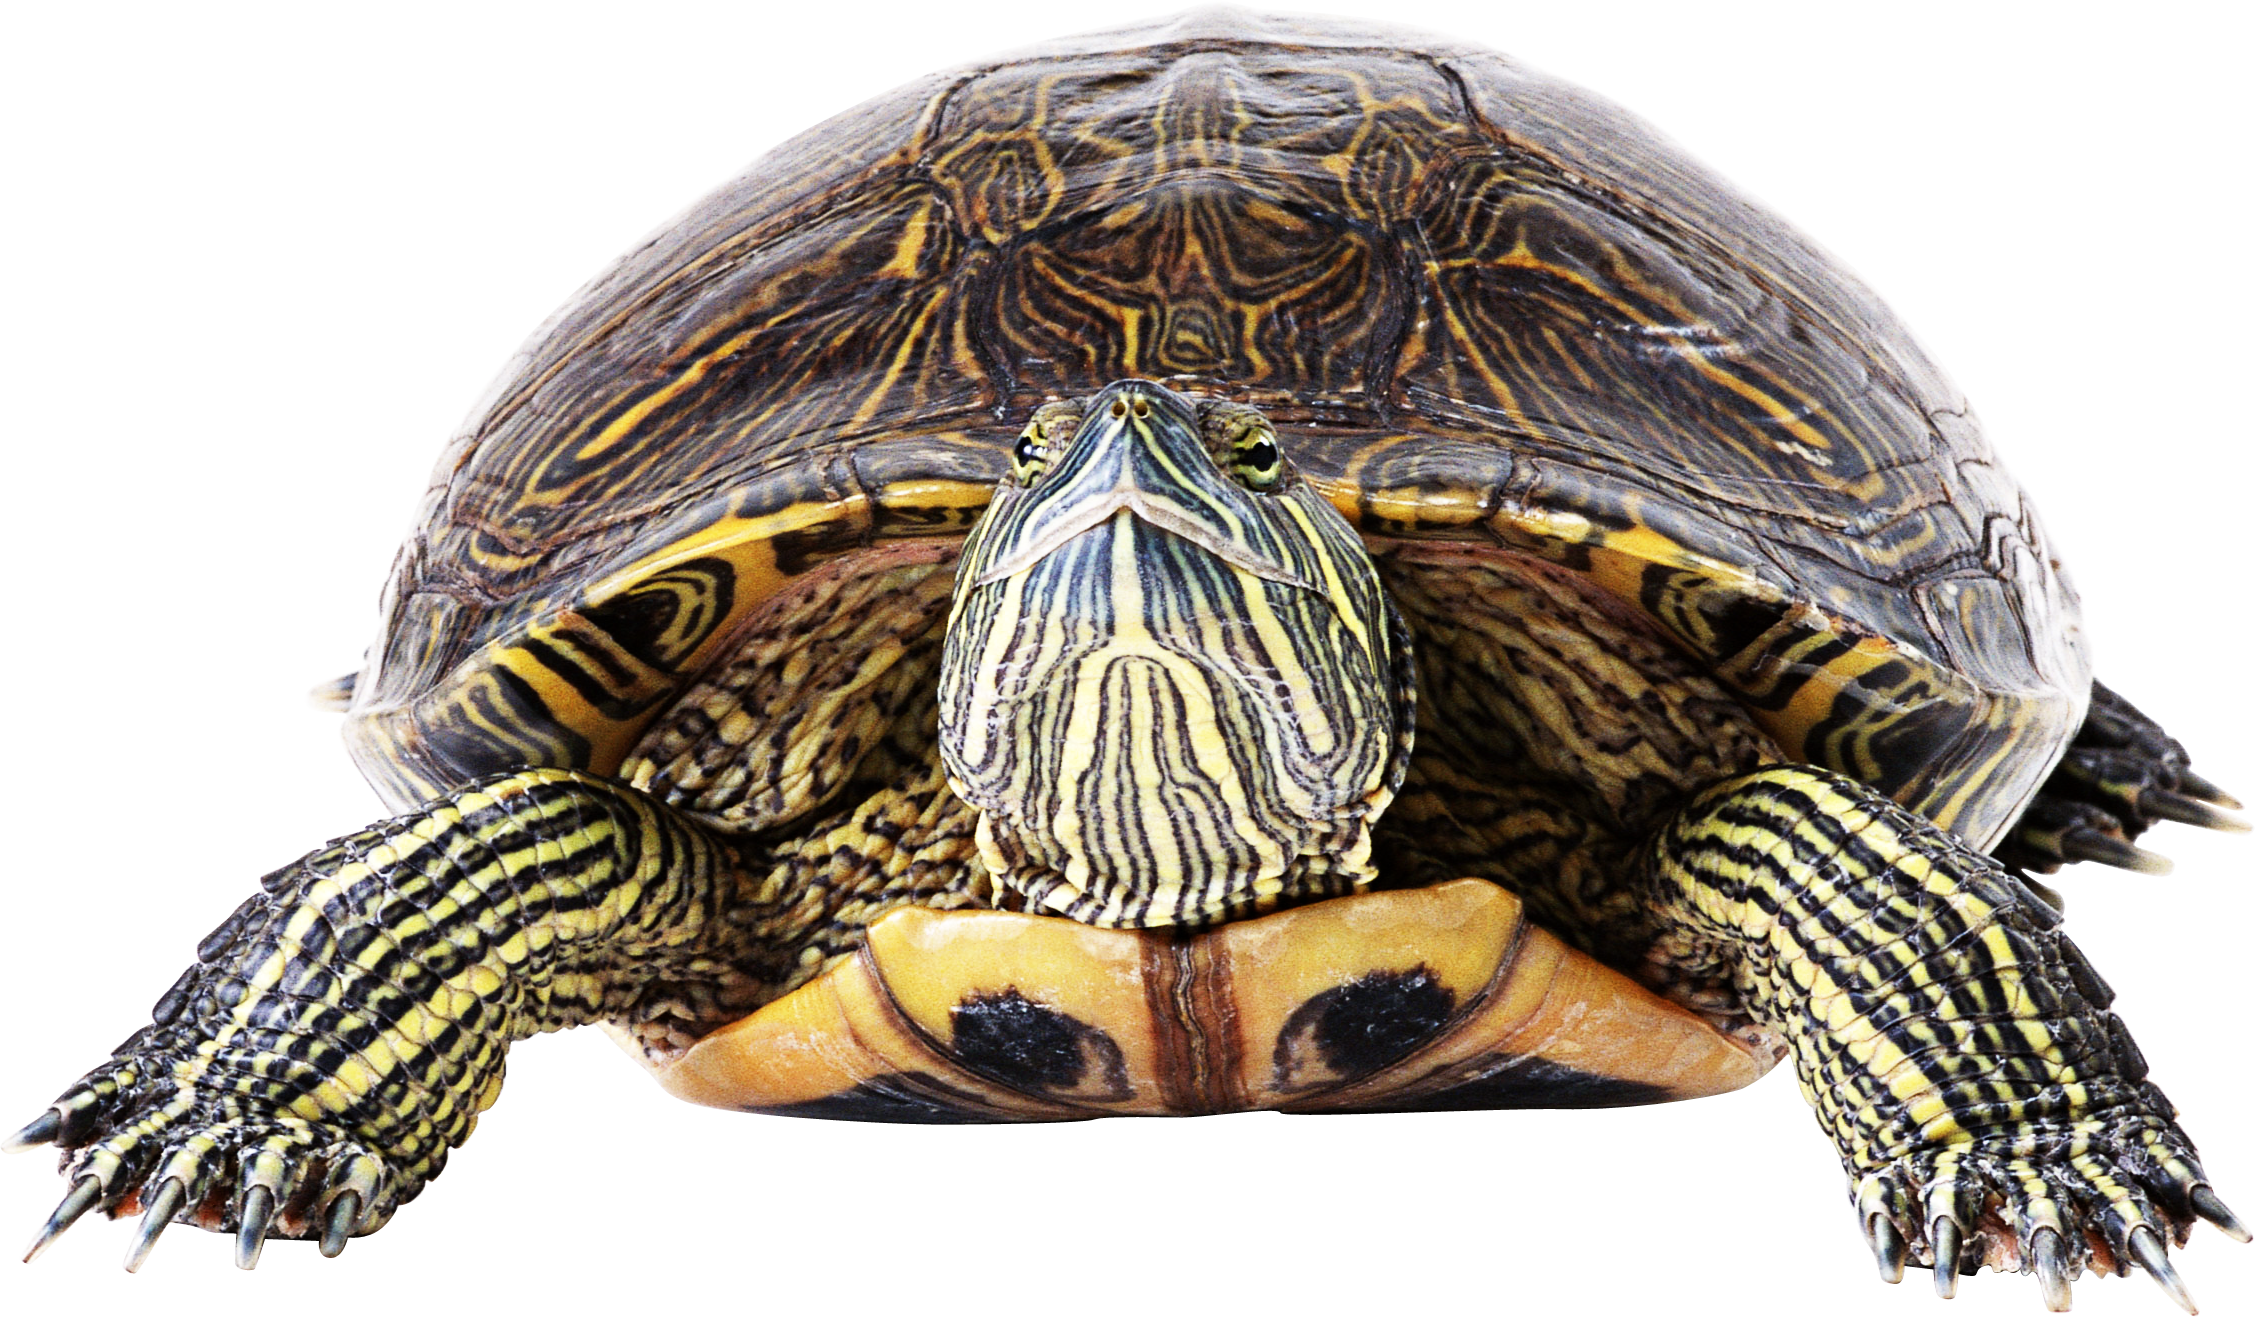 BonusCursos.com  bonuscursos.com BonusCursos.com turtle PNG49